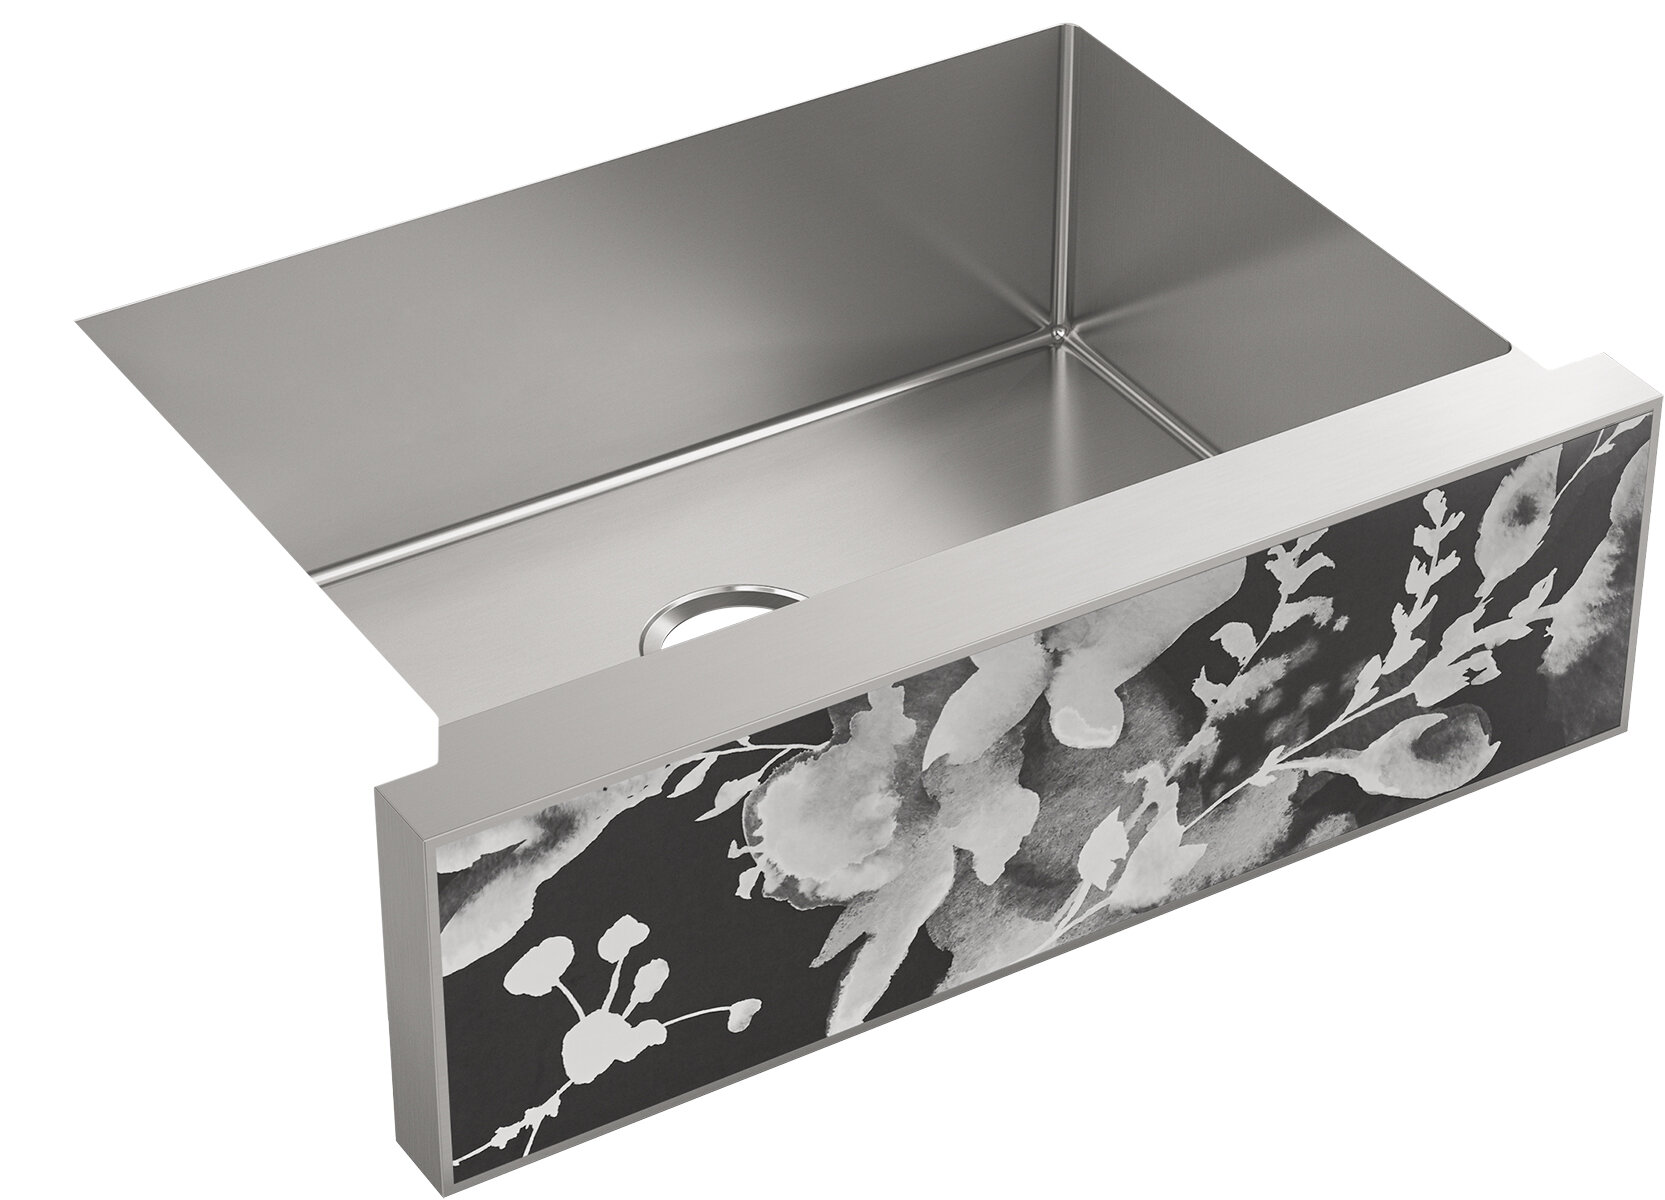 Kohler Tailor Medium Single Basin Stainless Steel Sink With Large Flora Insert Wayfair